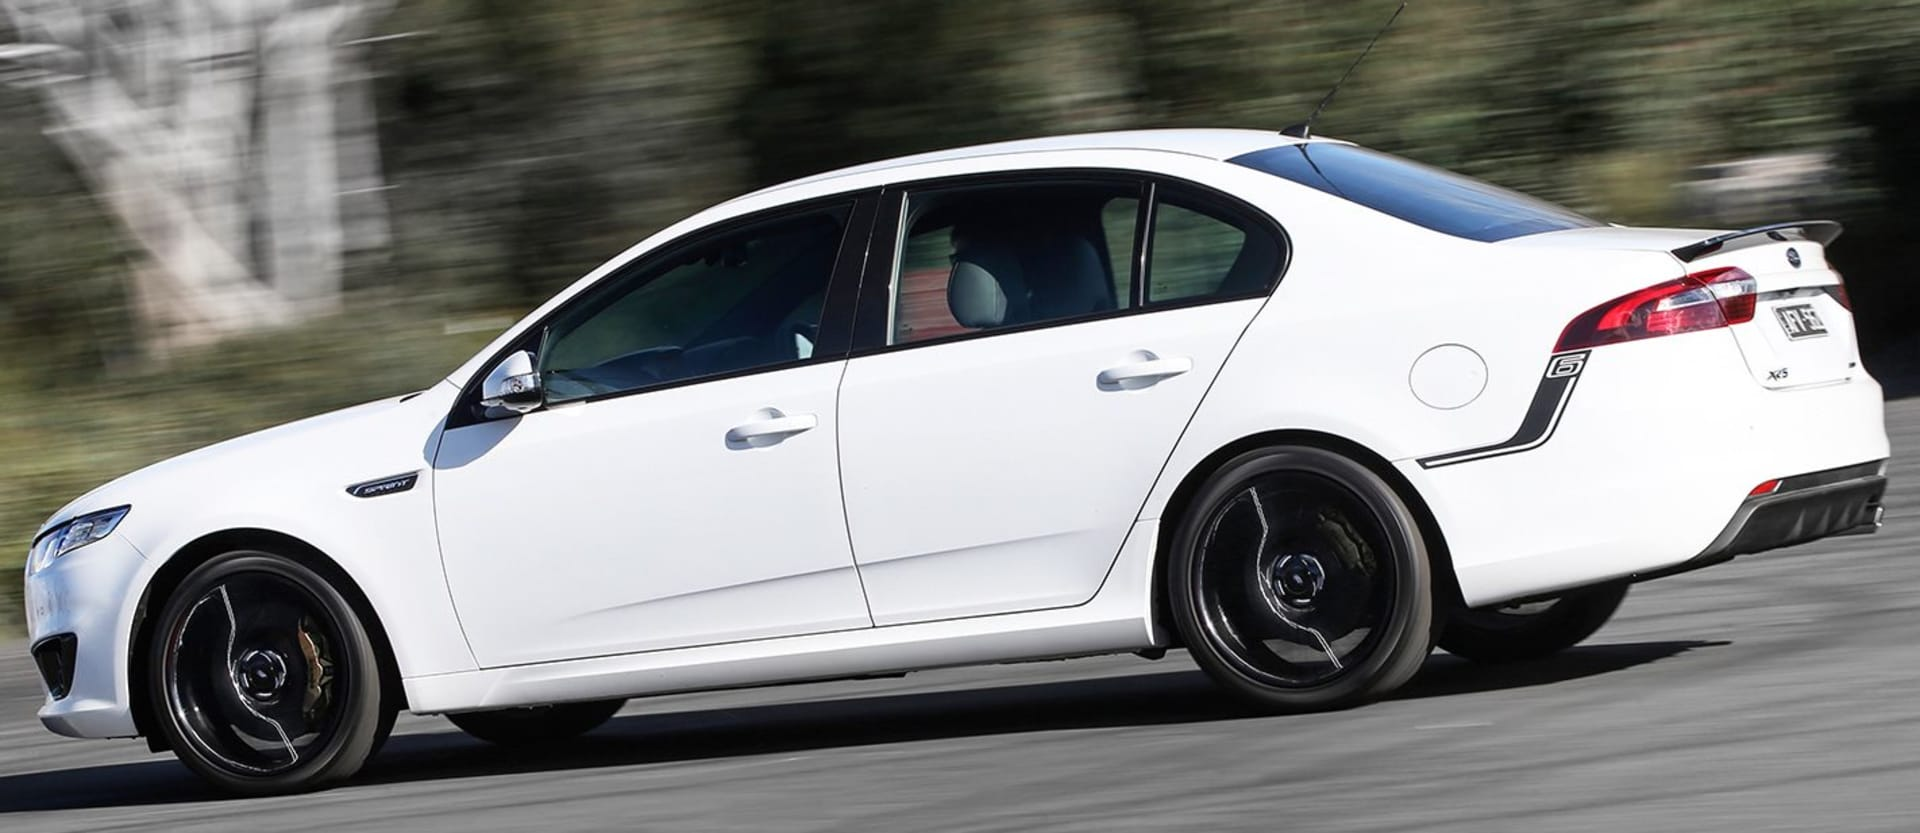 Ford Falcon XR6 Sprint review